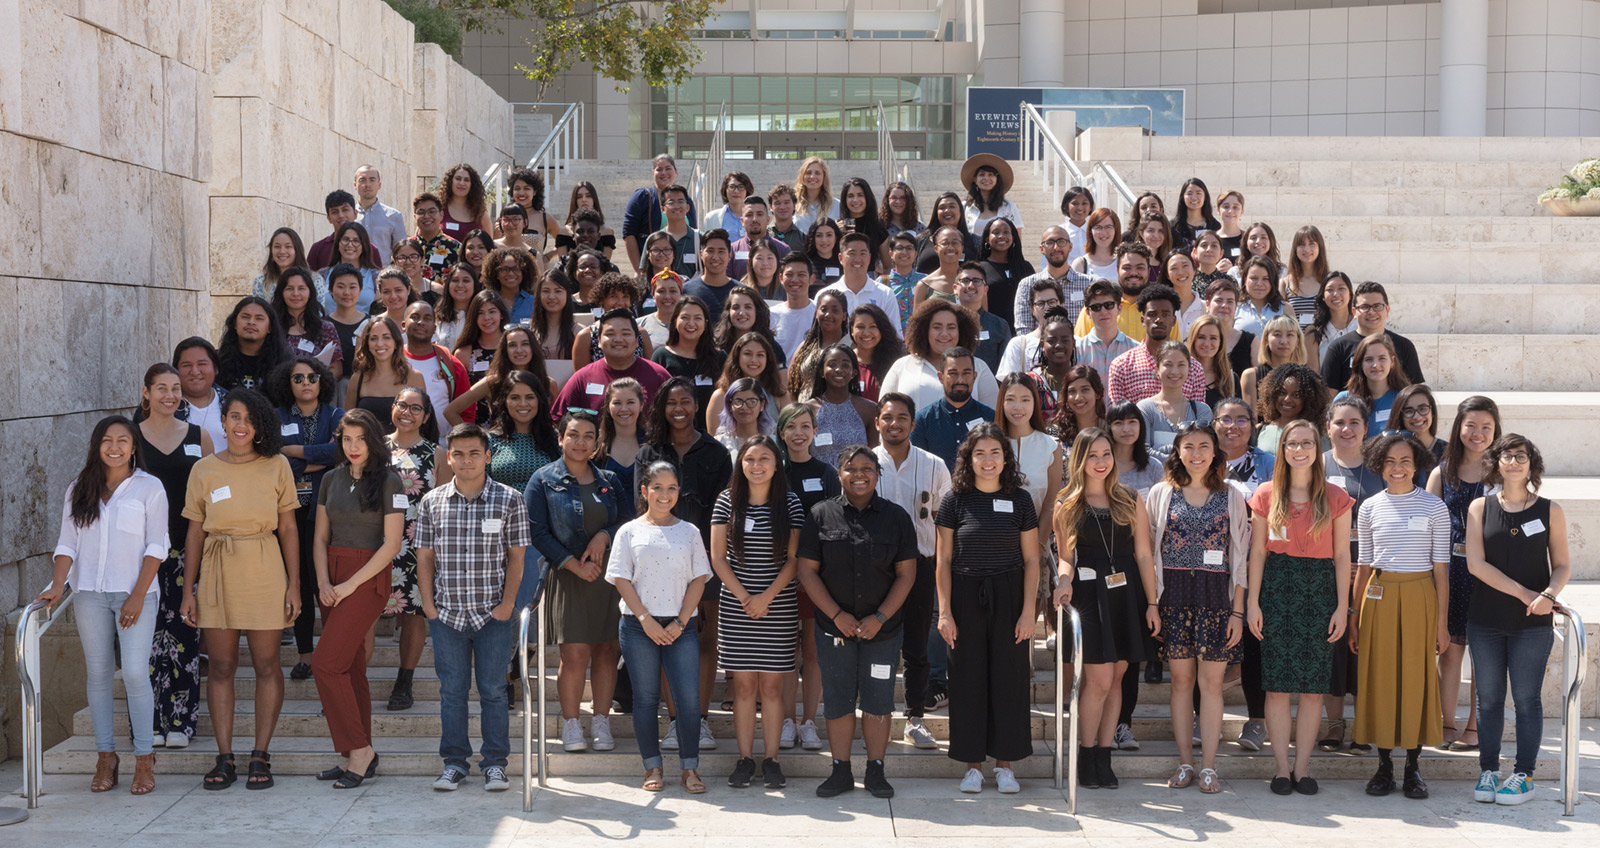 A large group of college students of color pose facing the camera on the steps of the Getty Center